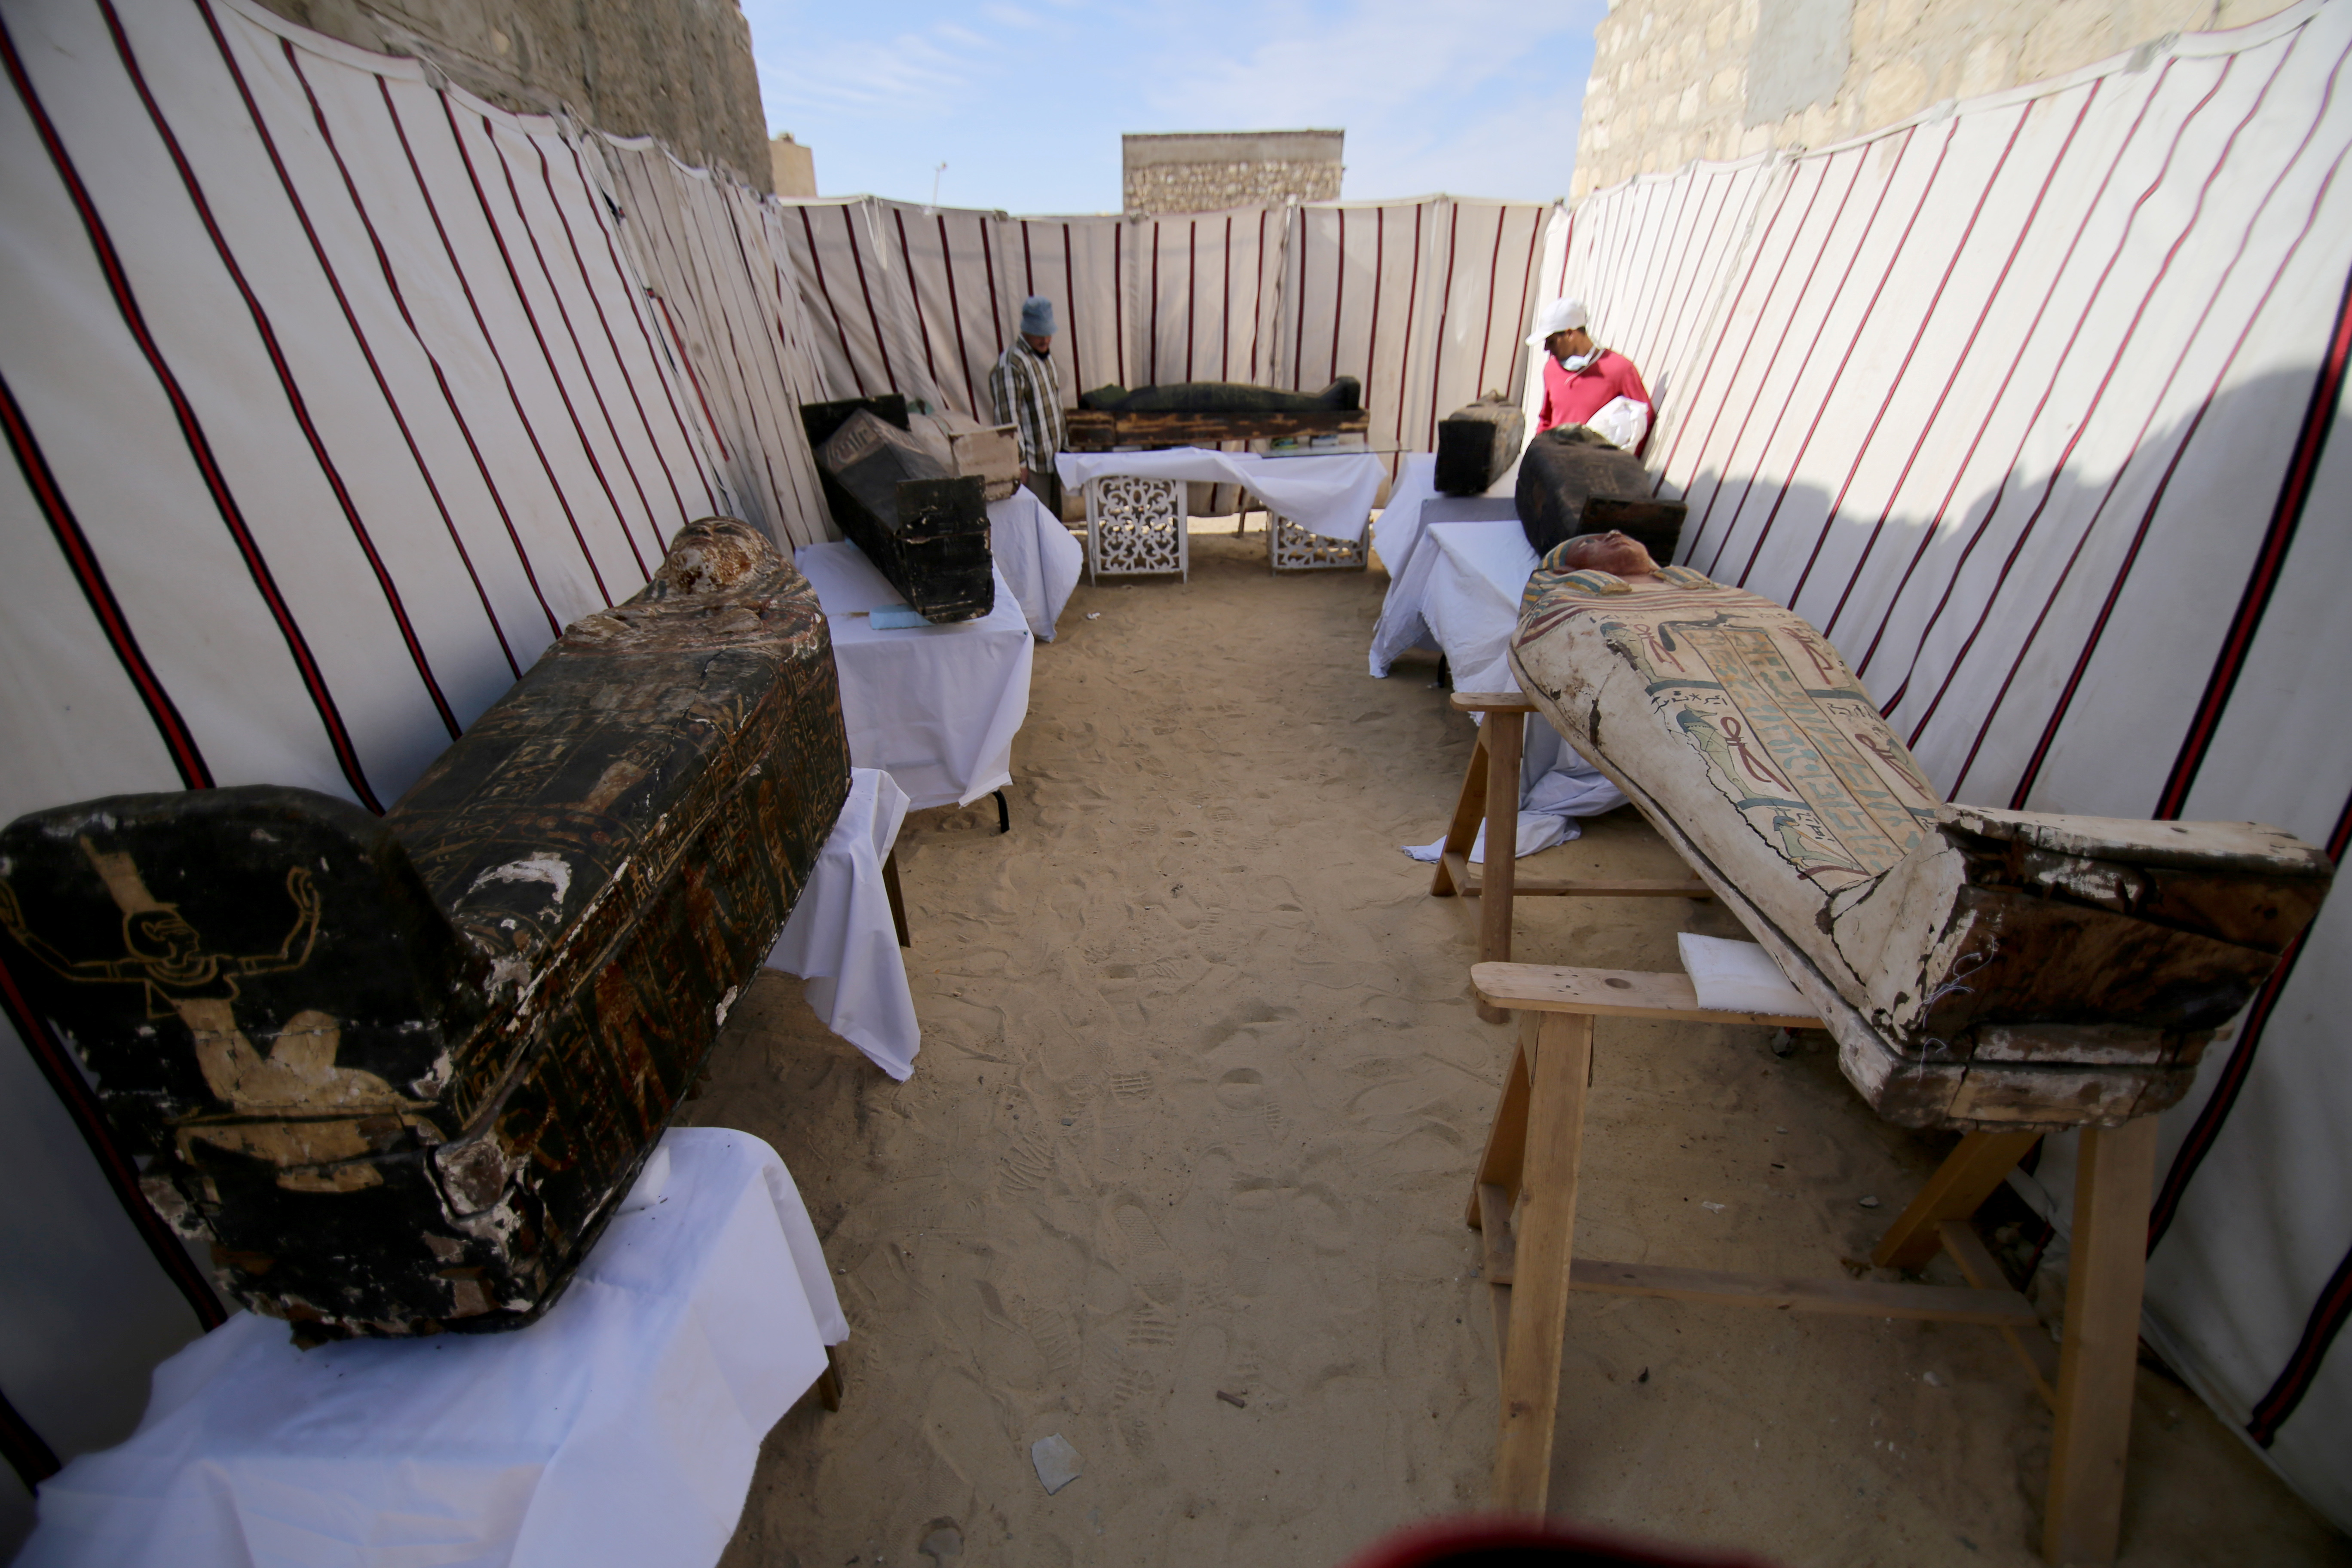 Coffins, part of a recent discovery from the Saqqara necropolis, are seen south of Cairo, Egypt January 17, 2021. REUTERS/Hanaa Habib